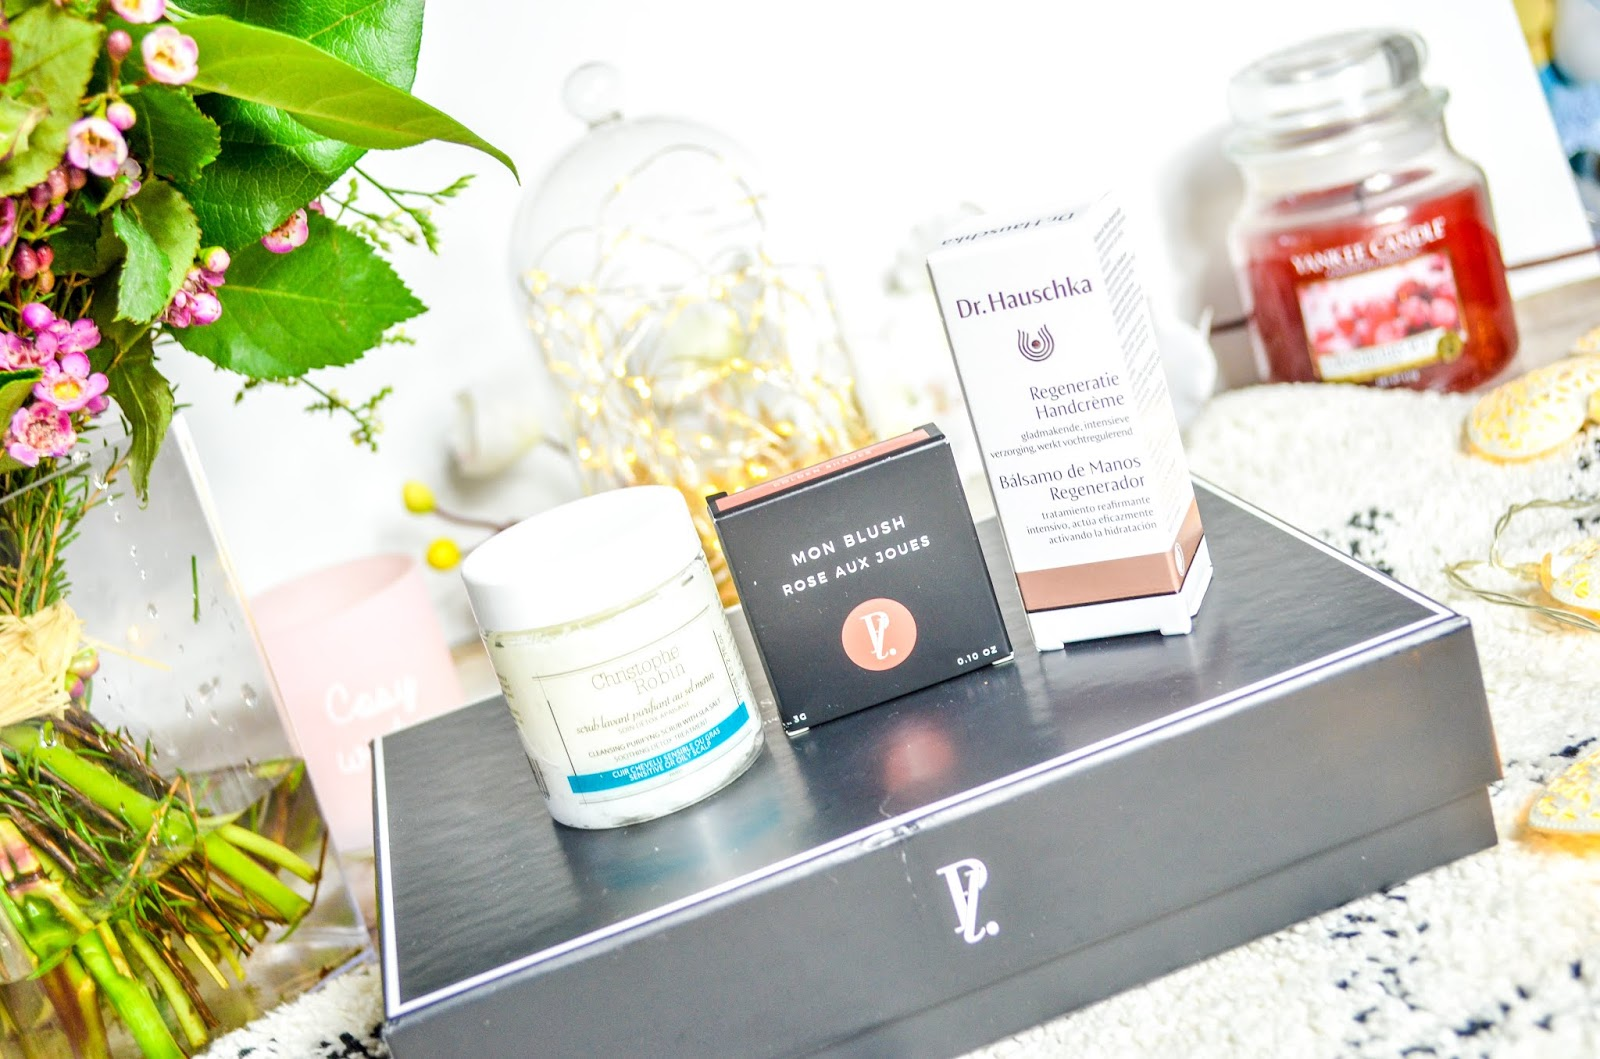 box prescrition lab fevrier 2019 blog mode beaute lifestyle lyon mllexceline